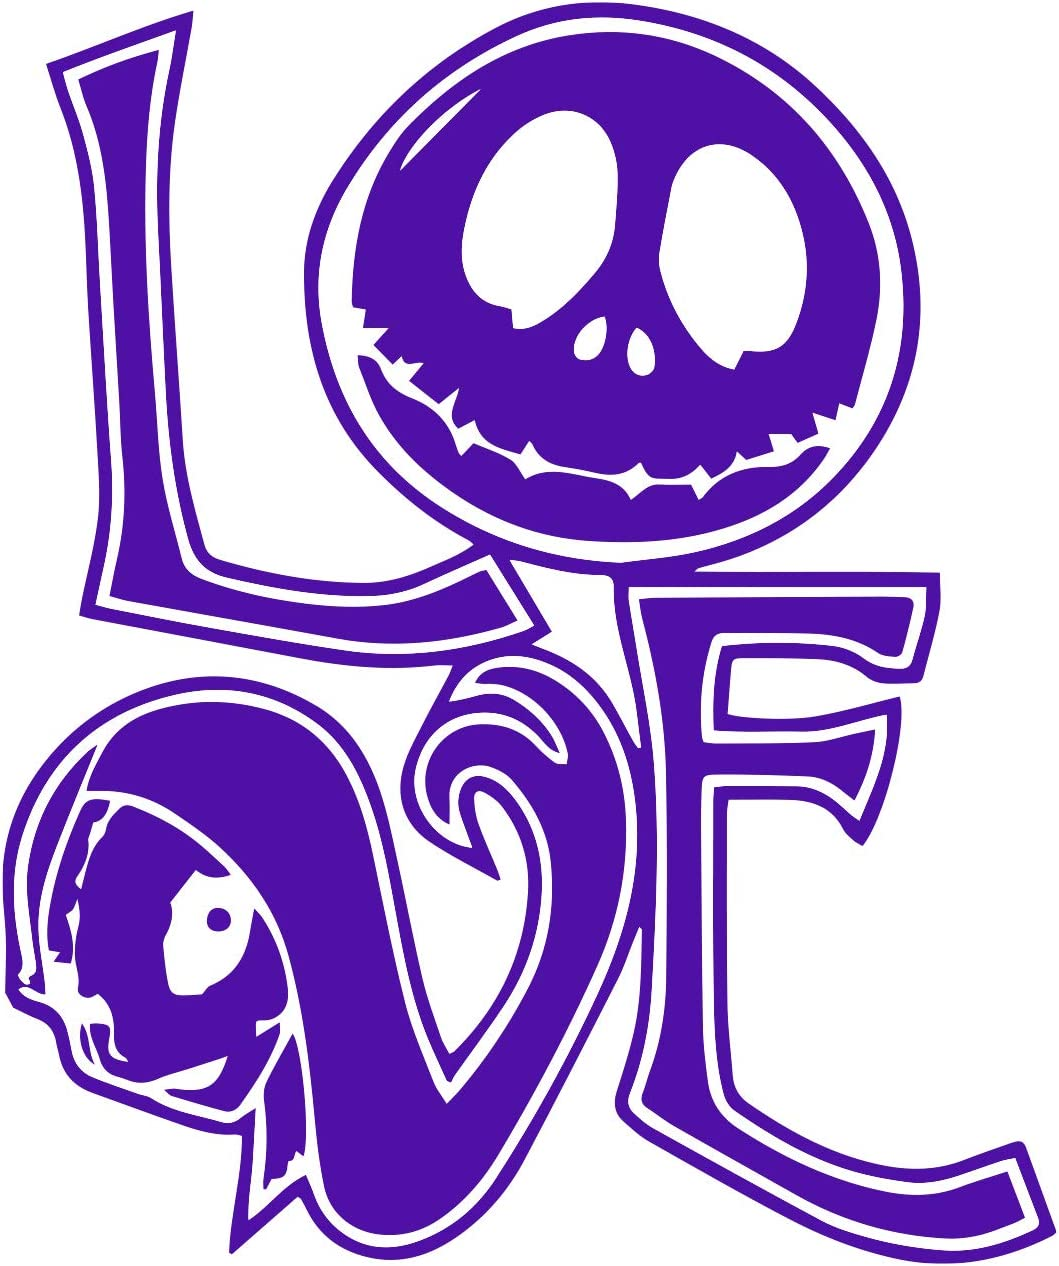 Nightmare Before Christmas Love Sally and Jack Decal Vinyl Sticker Cars Trucks Vans Walls Laptop 5.5 x 4.5 (Light Purple)